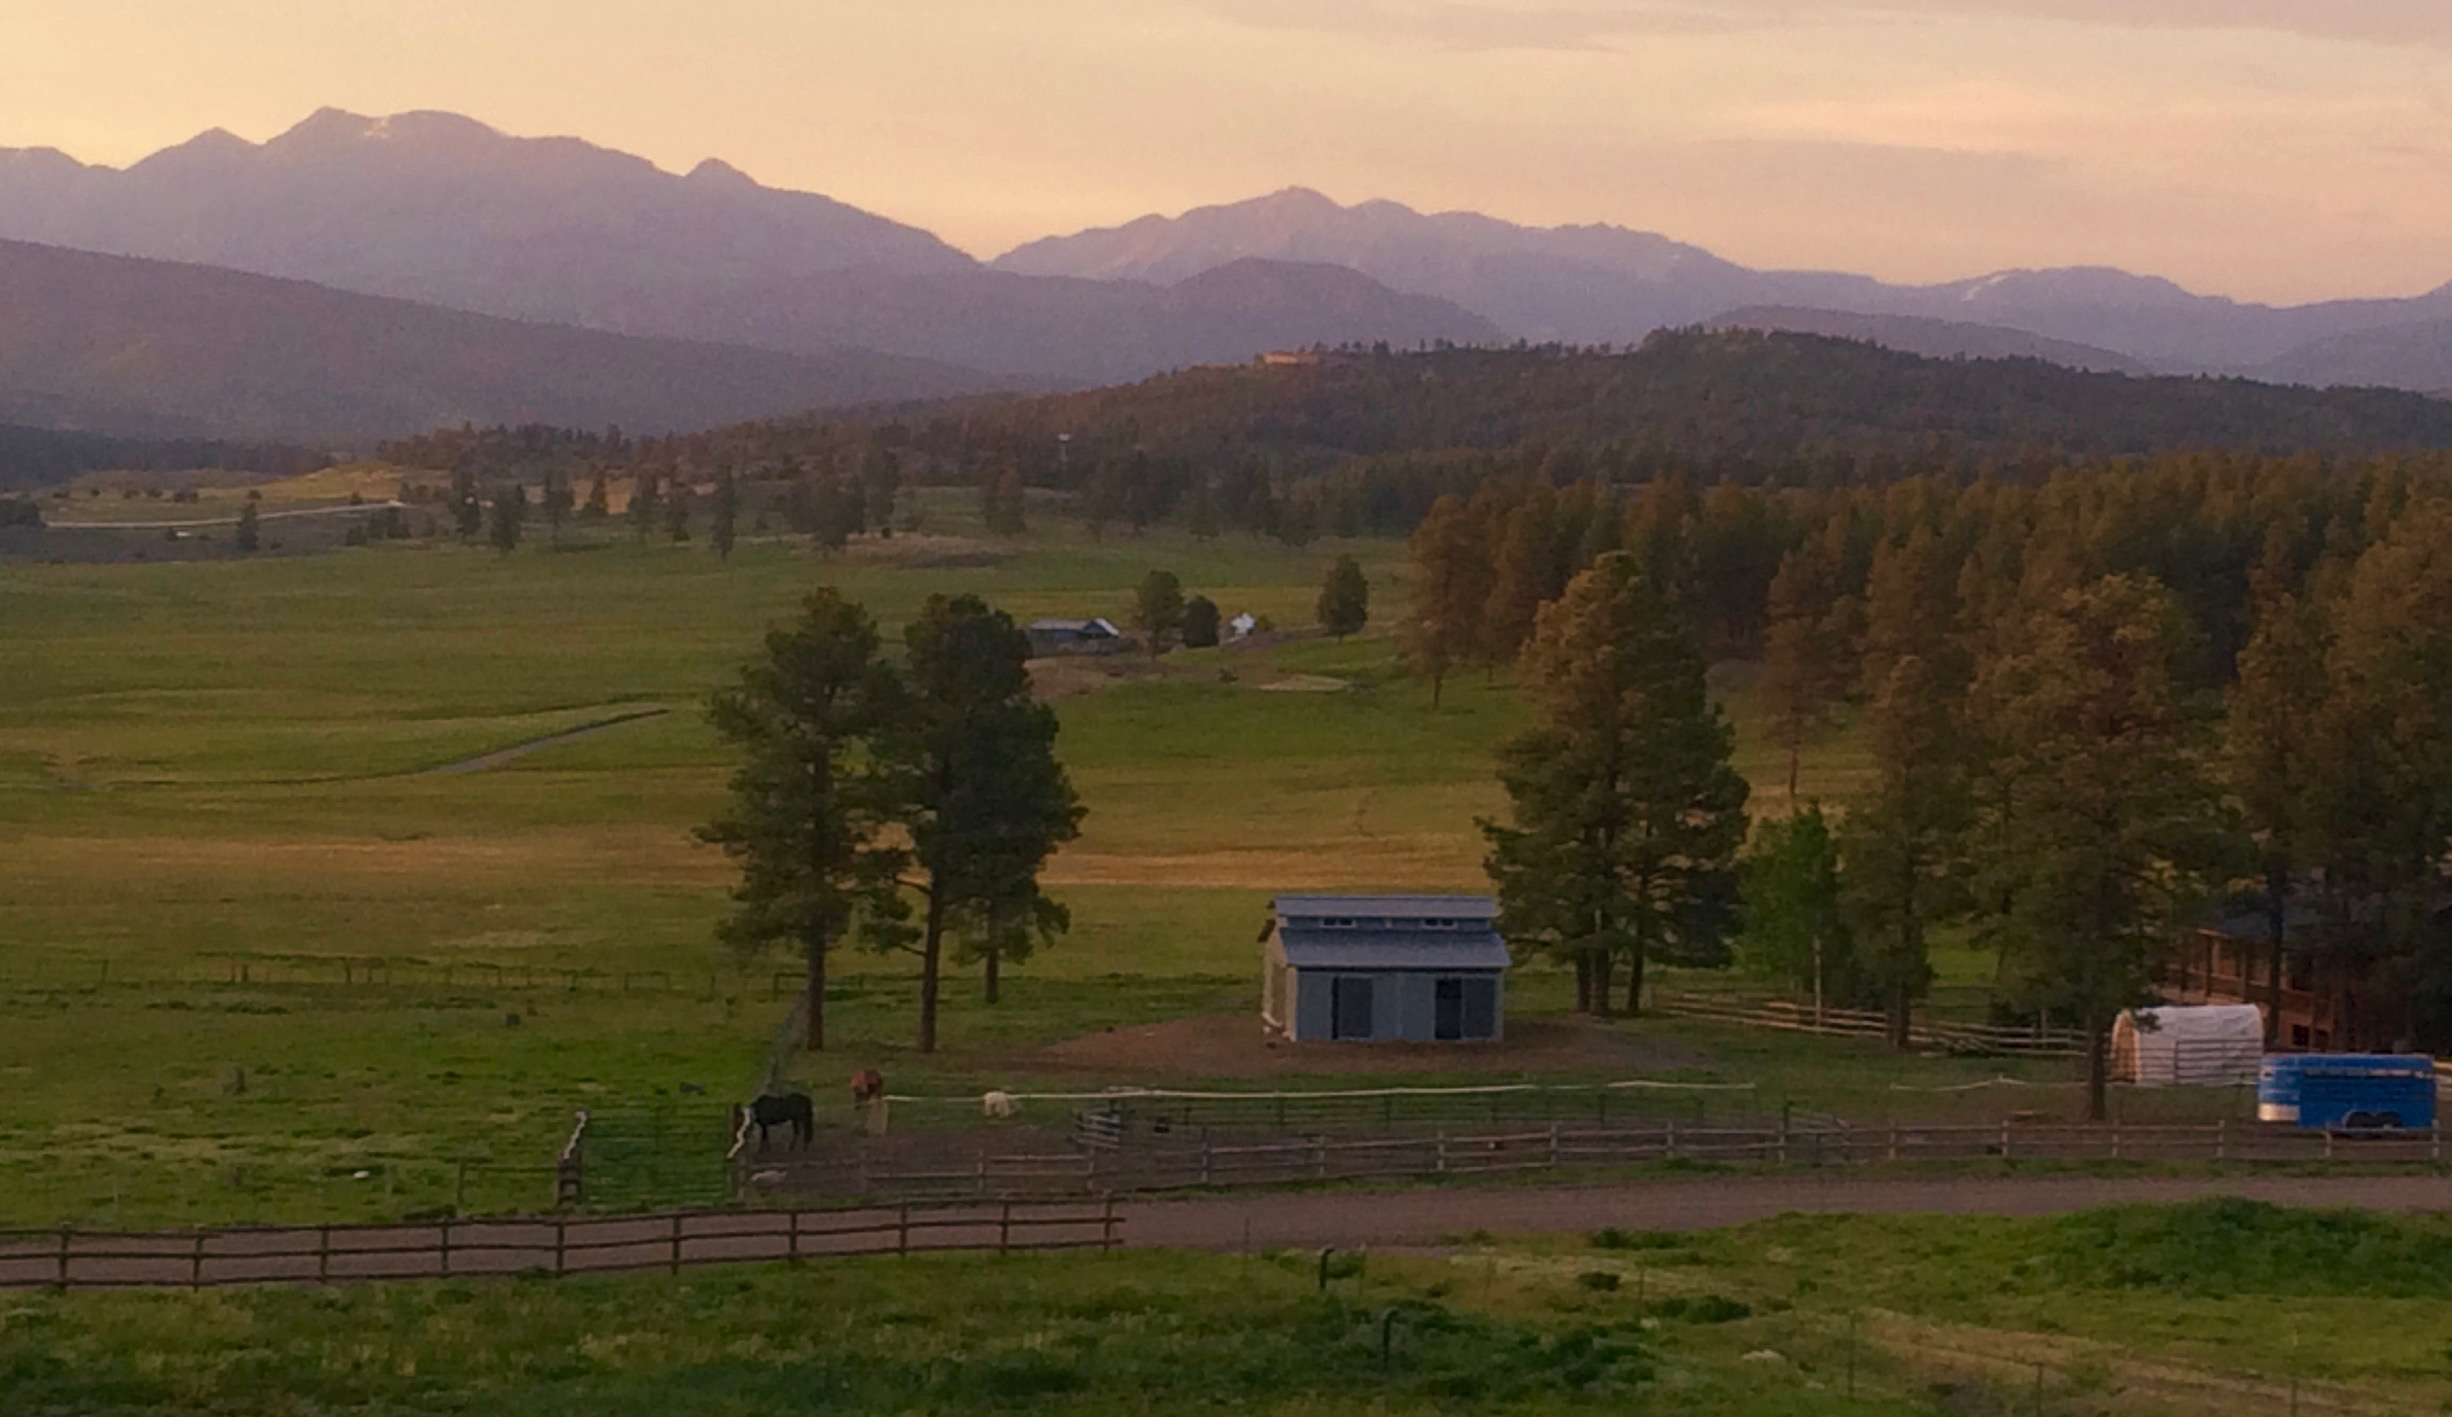 Evening View from Pagosa Springs B&B